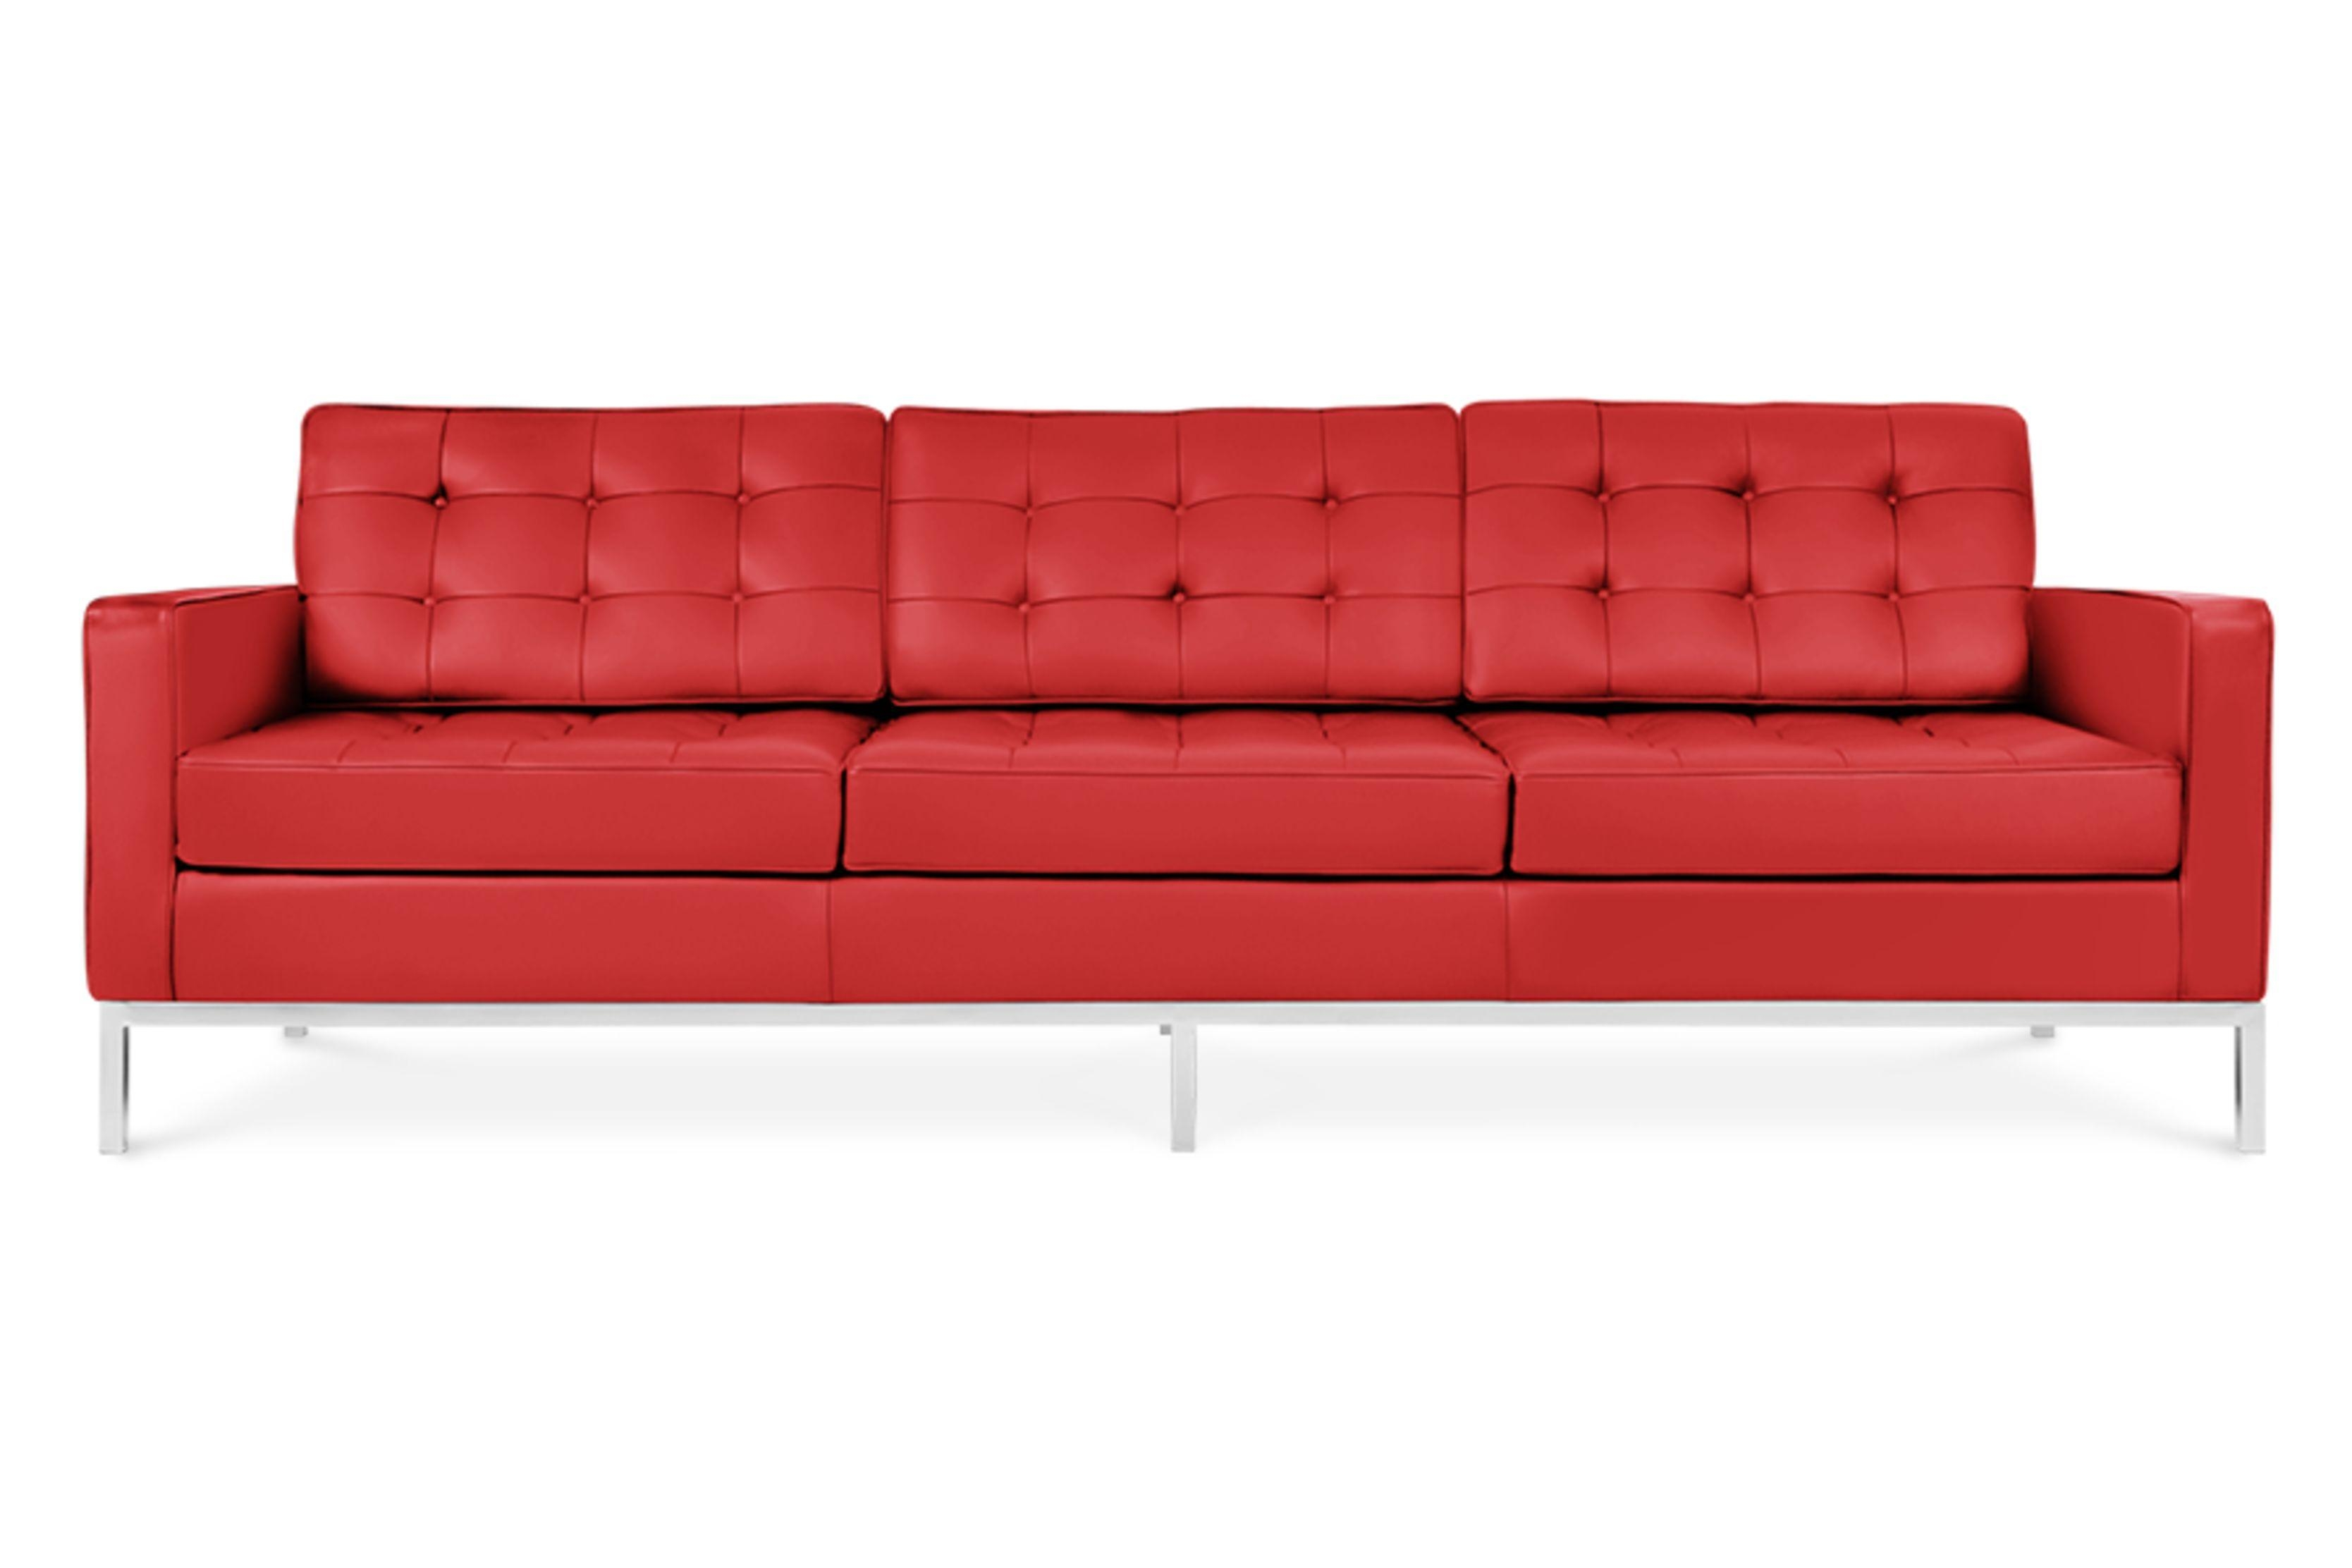 Cloud Sectional Sofa With Design Inspiration 38094 | Kengire Throughout Cloud Sectional Sofas (View 18 of 20)